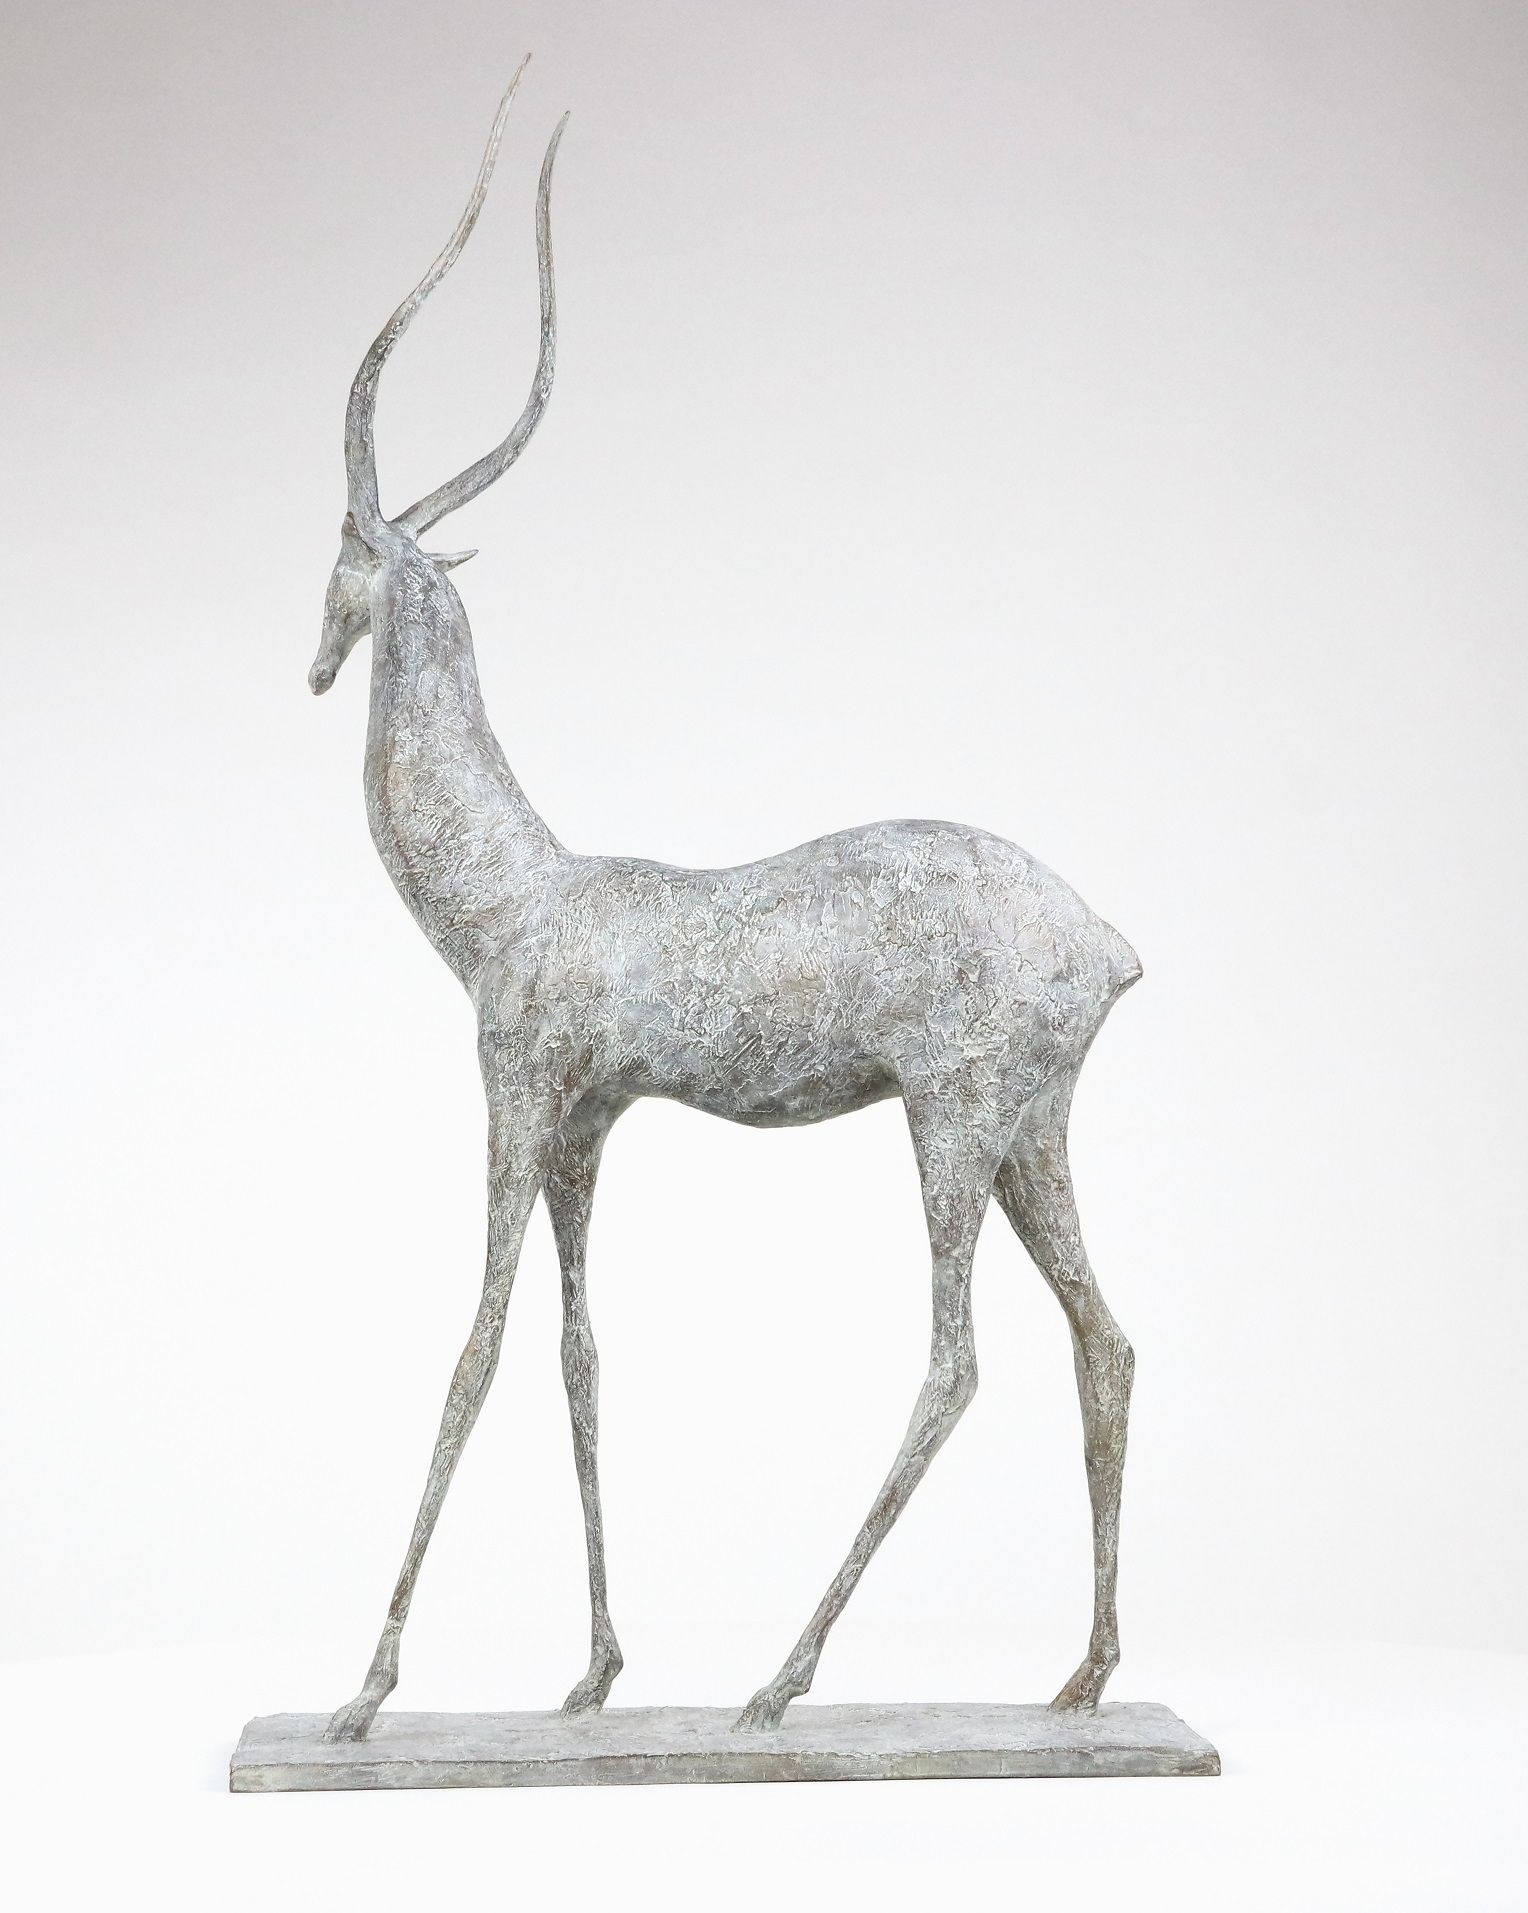 Gazelle I,Pierre Yermia,Sculpture, detail 1